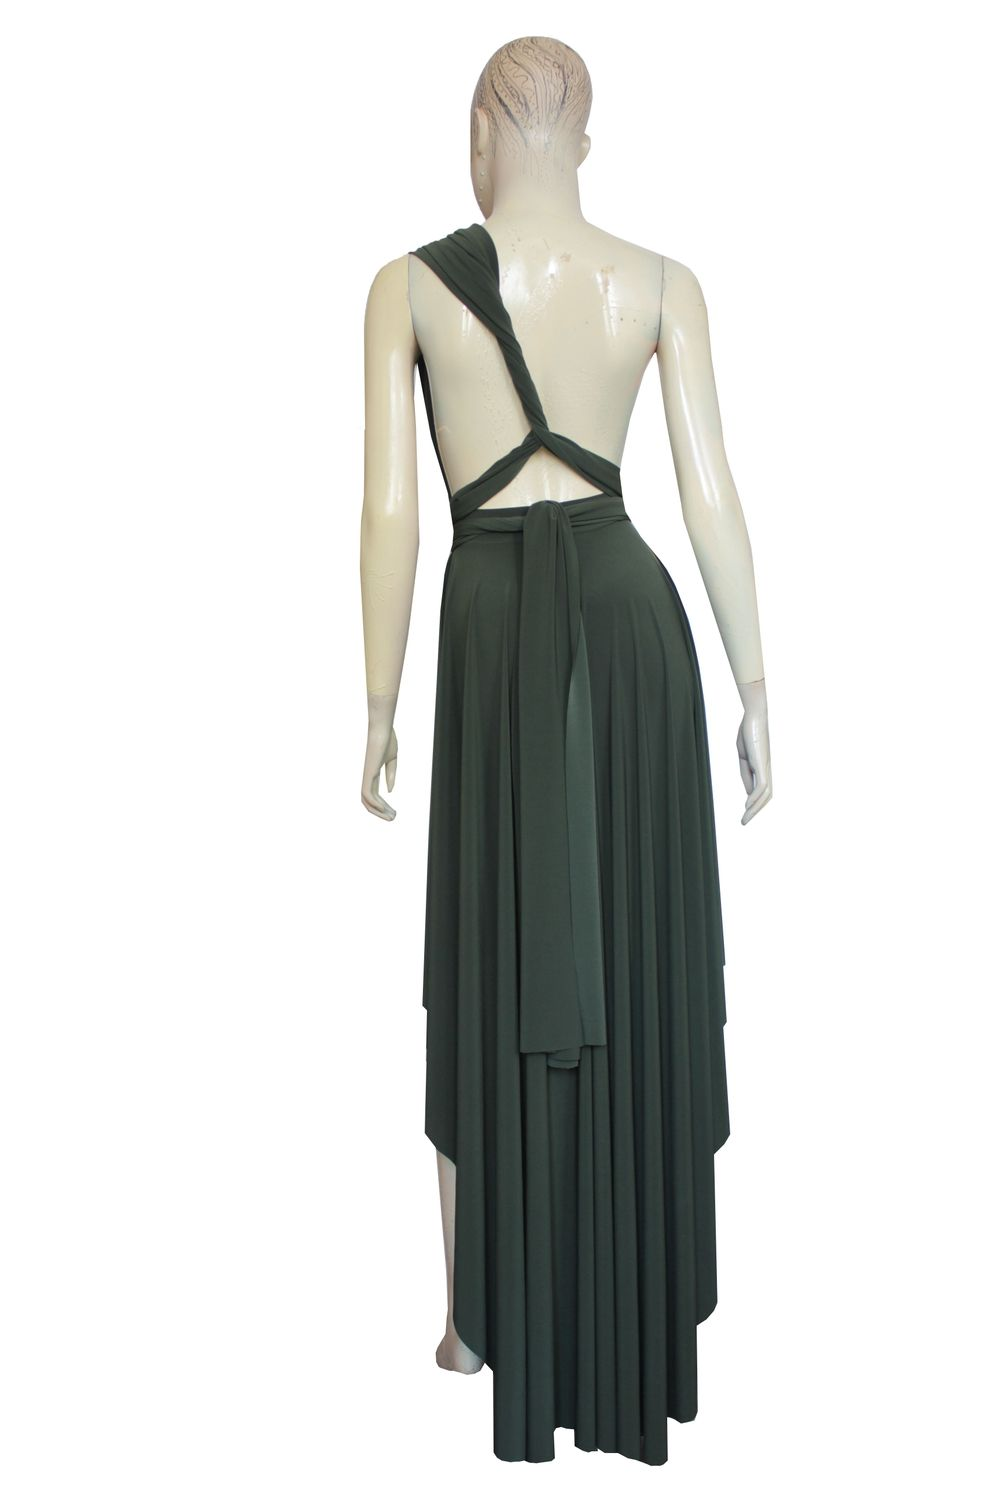 8eae7251d17 Olive green convertible dress. Multi way bridesmaids gown. High low plus  size dress. Sexy prom gown.